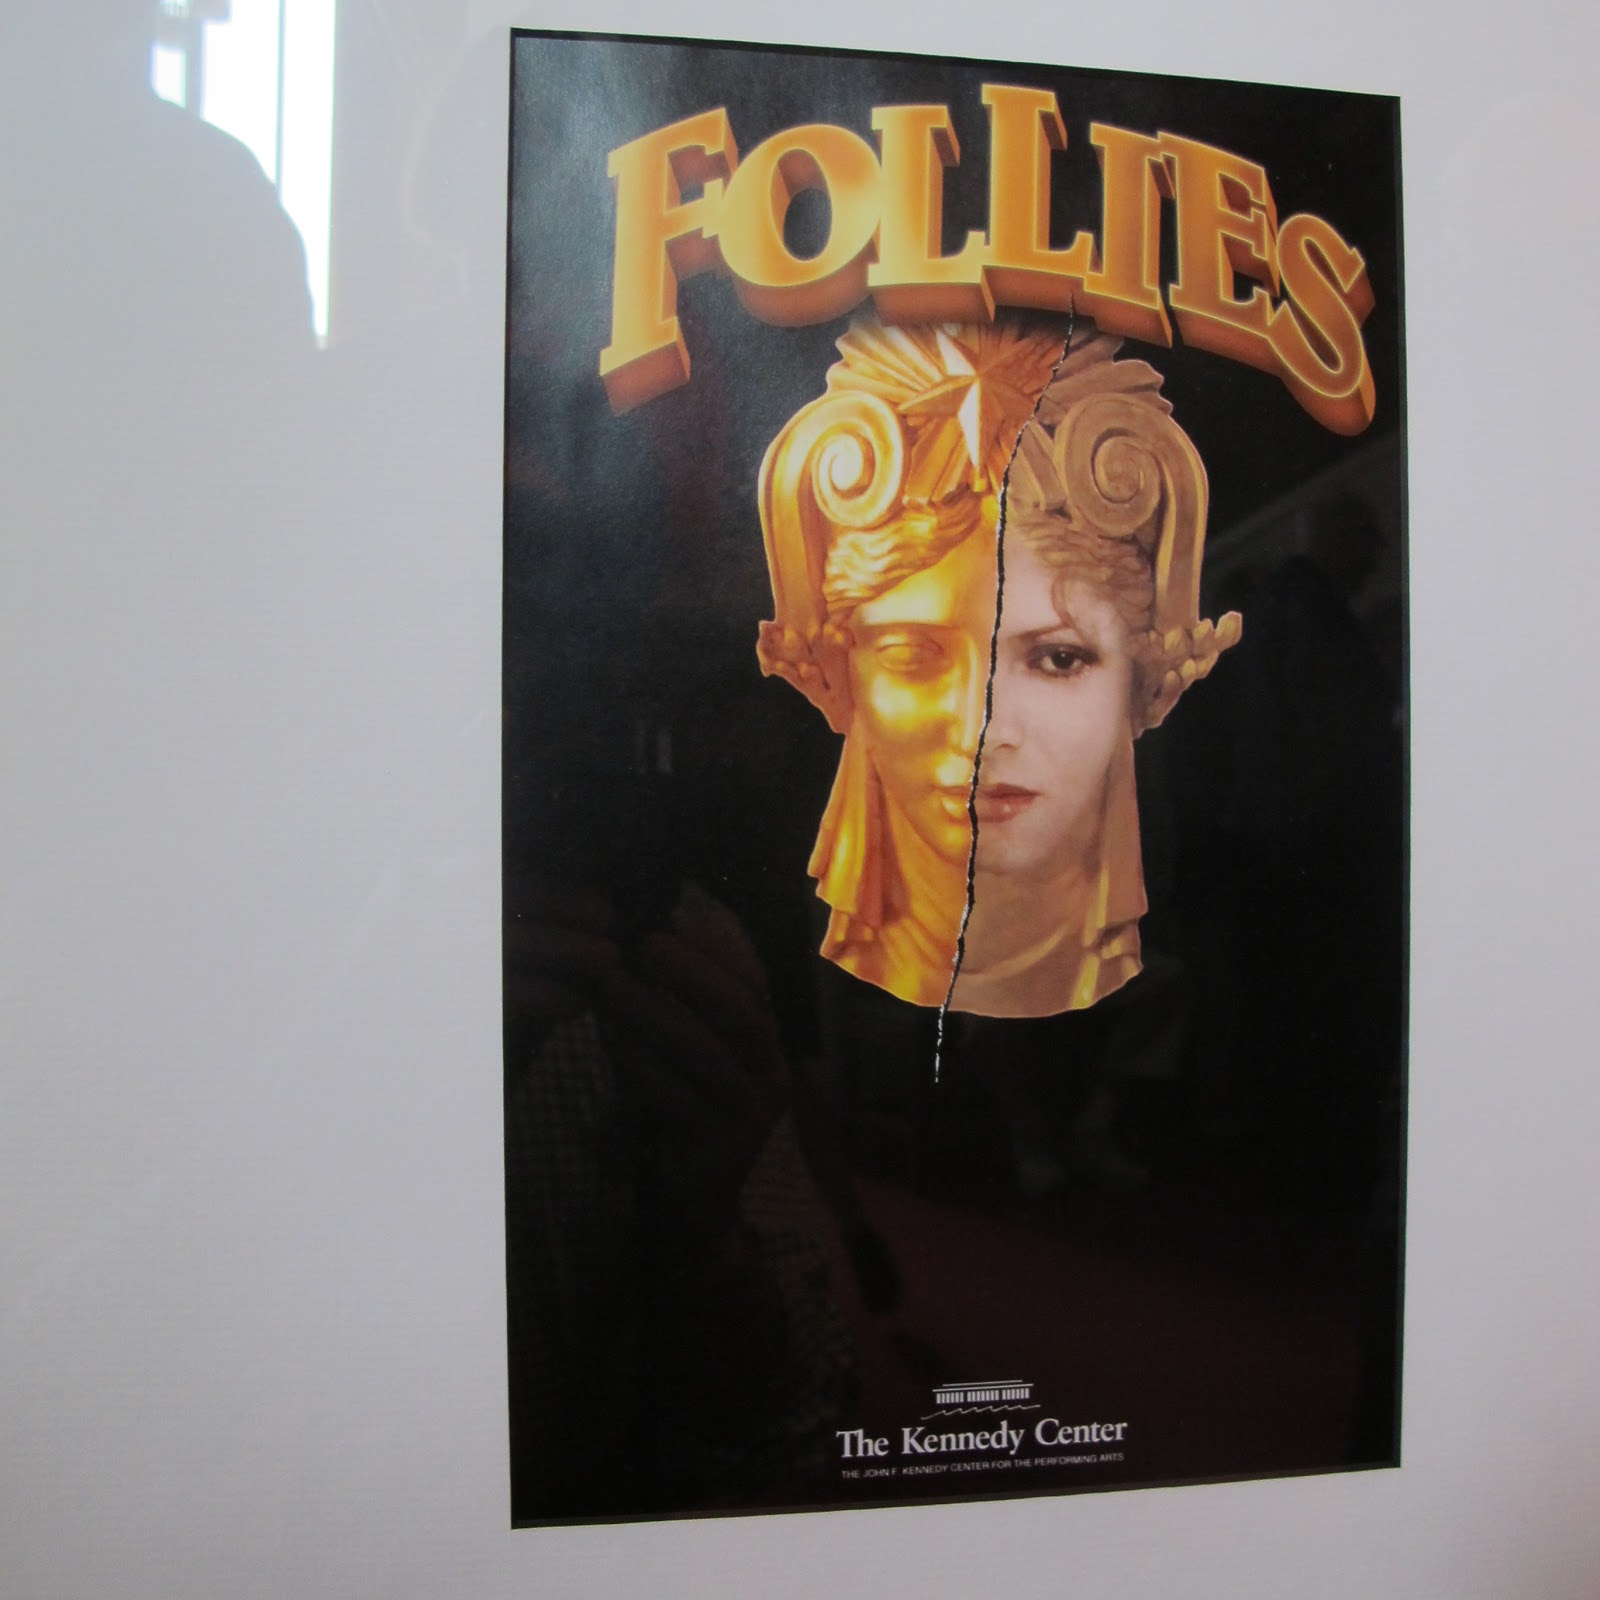 Alternate Artwork for FOLLIES Revival